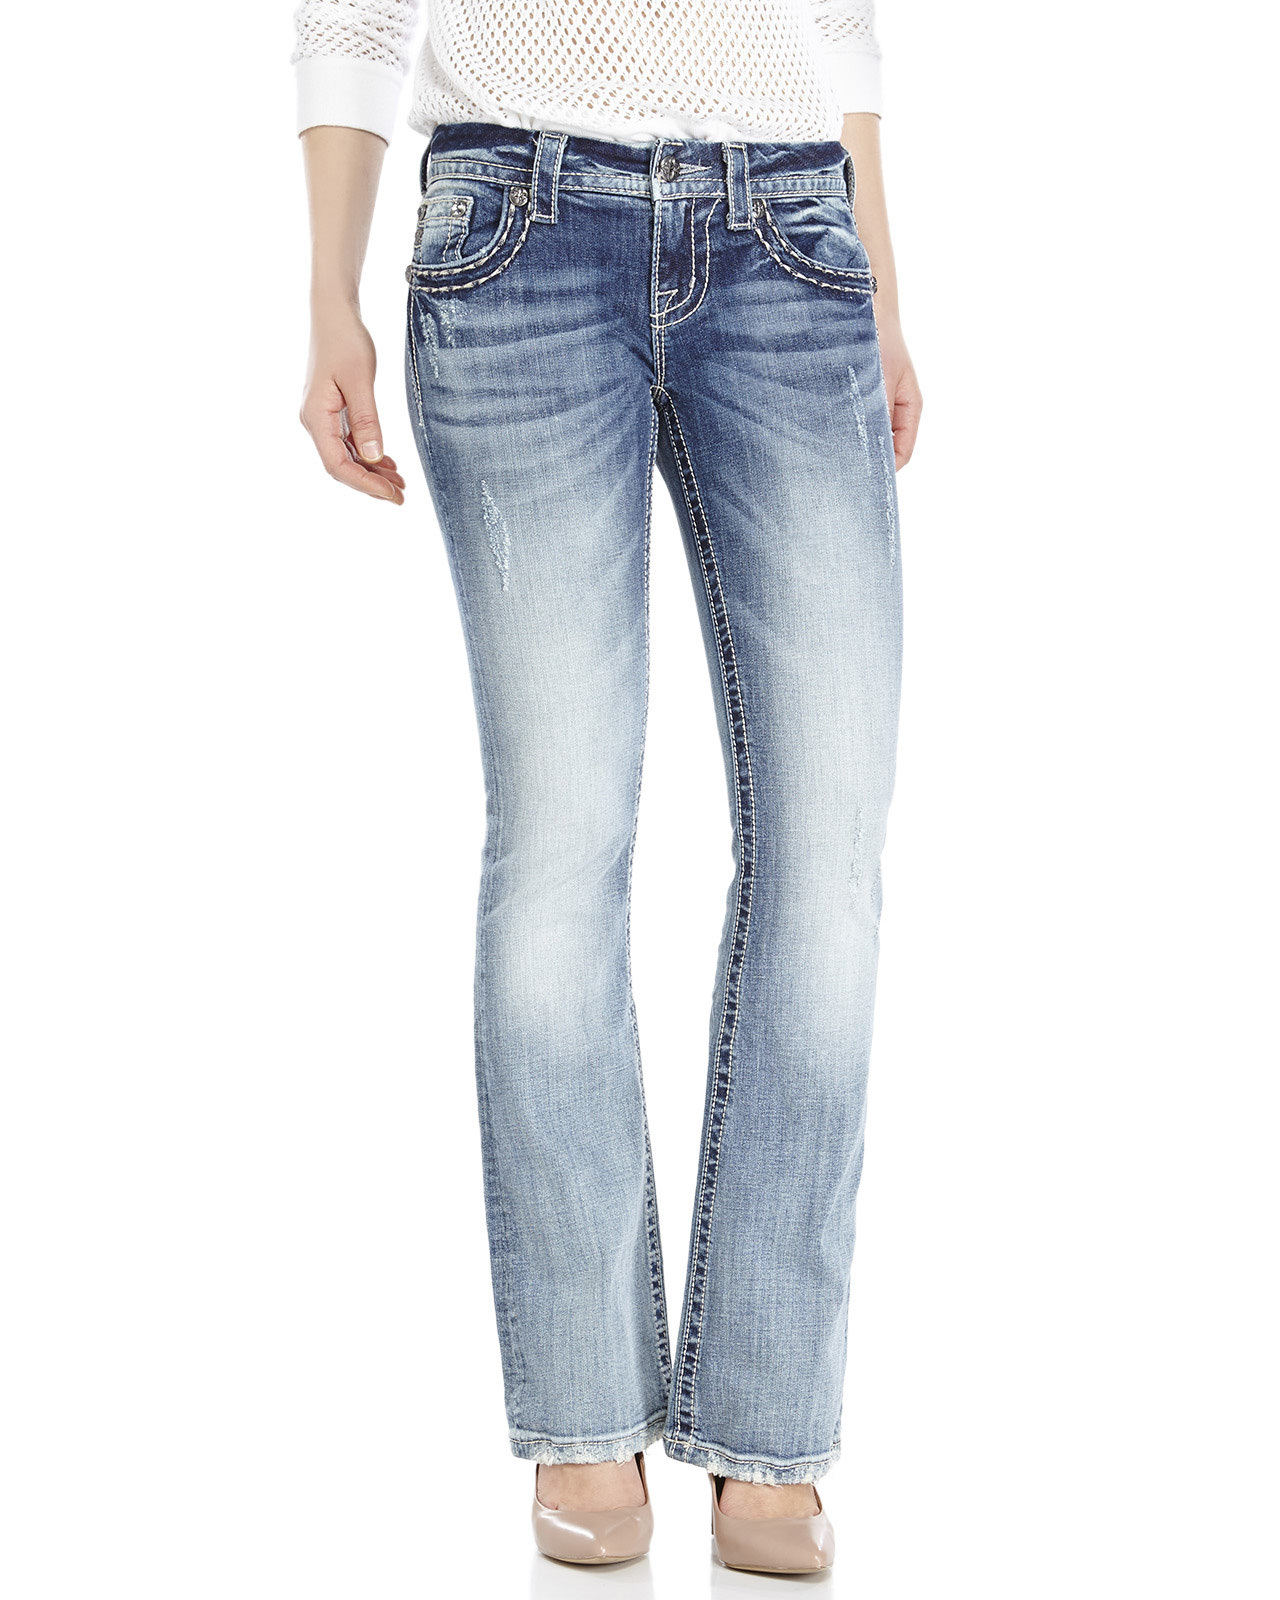 Miss me Distressed Mid-rise Bootcut Jeans in Blue | Lyst